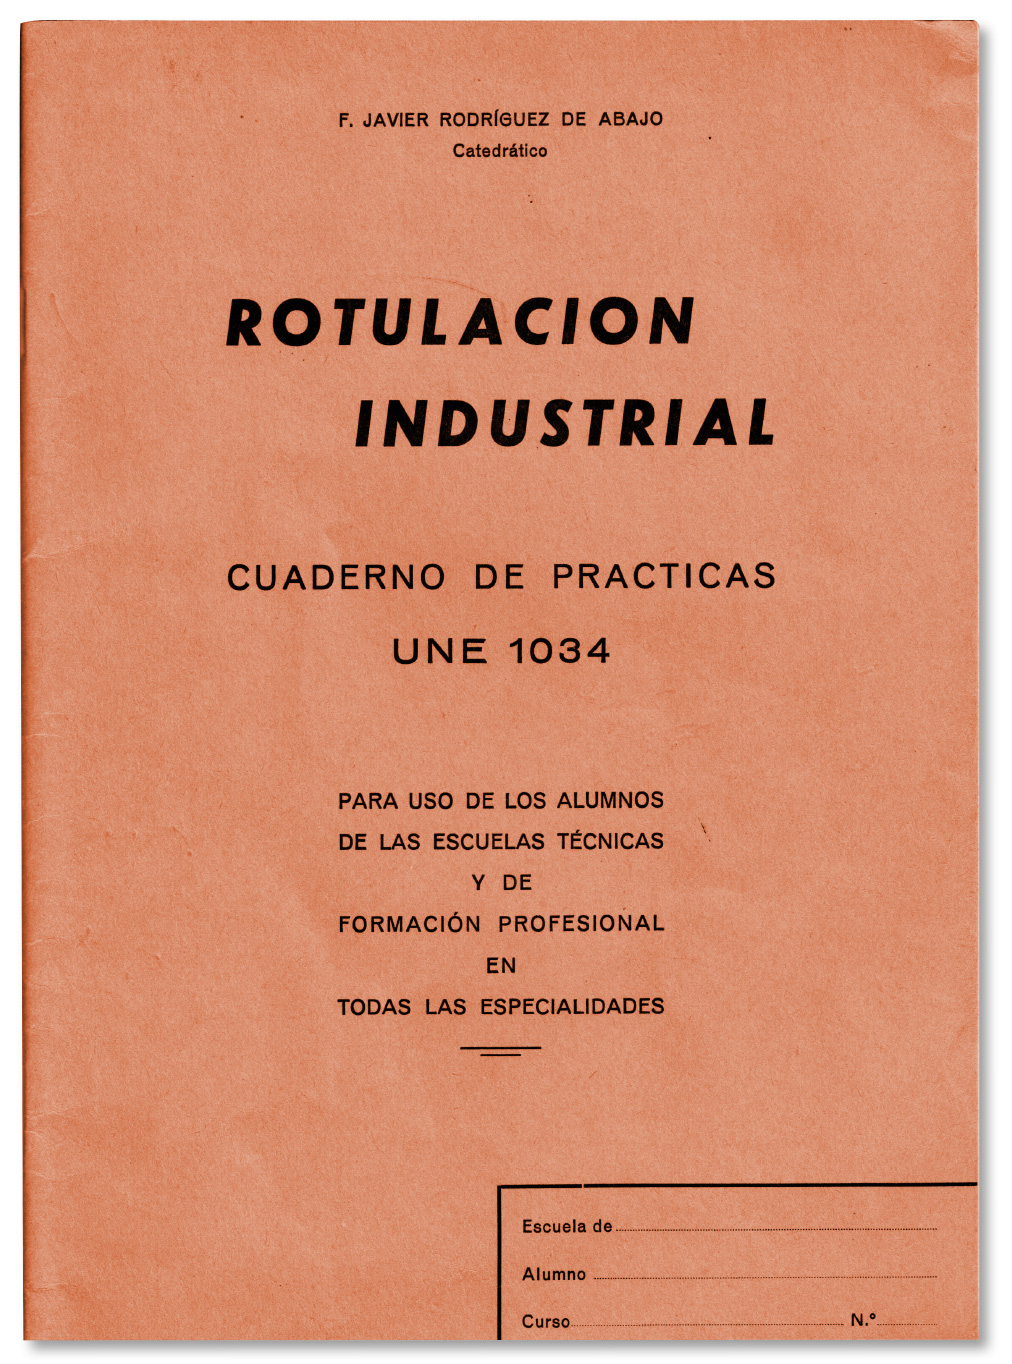 Image showing the cover for the technical calligraphy manual José Manuel Urós found in his archives.